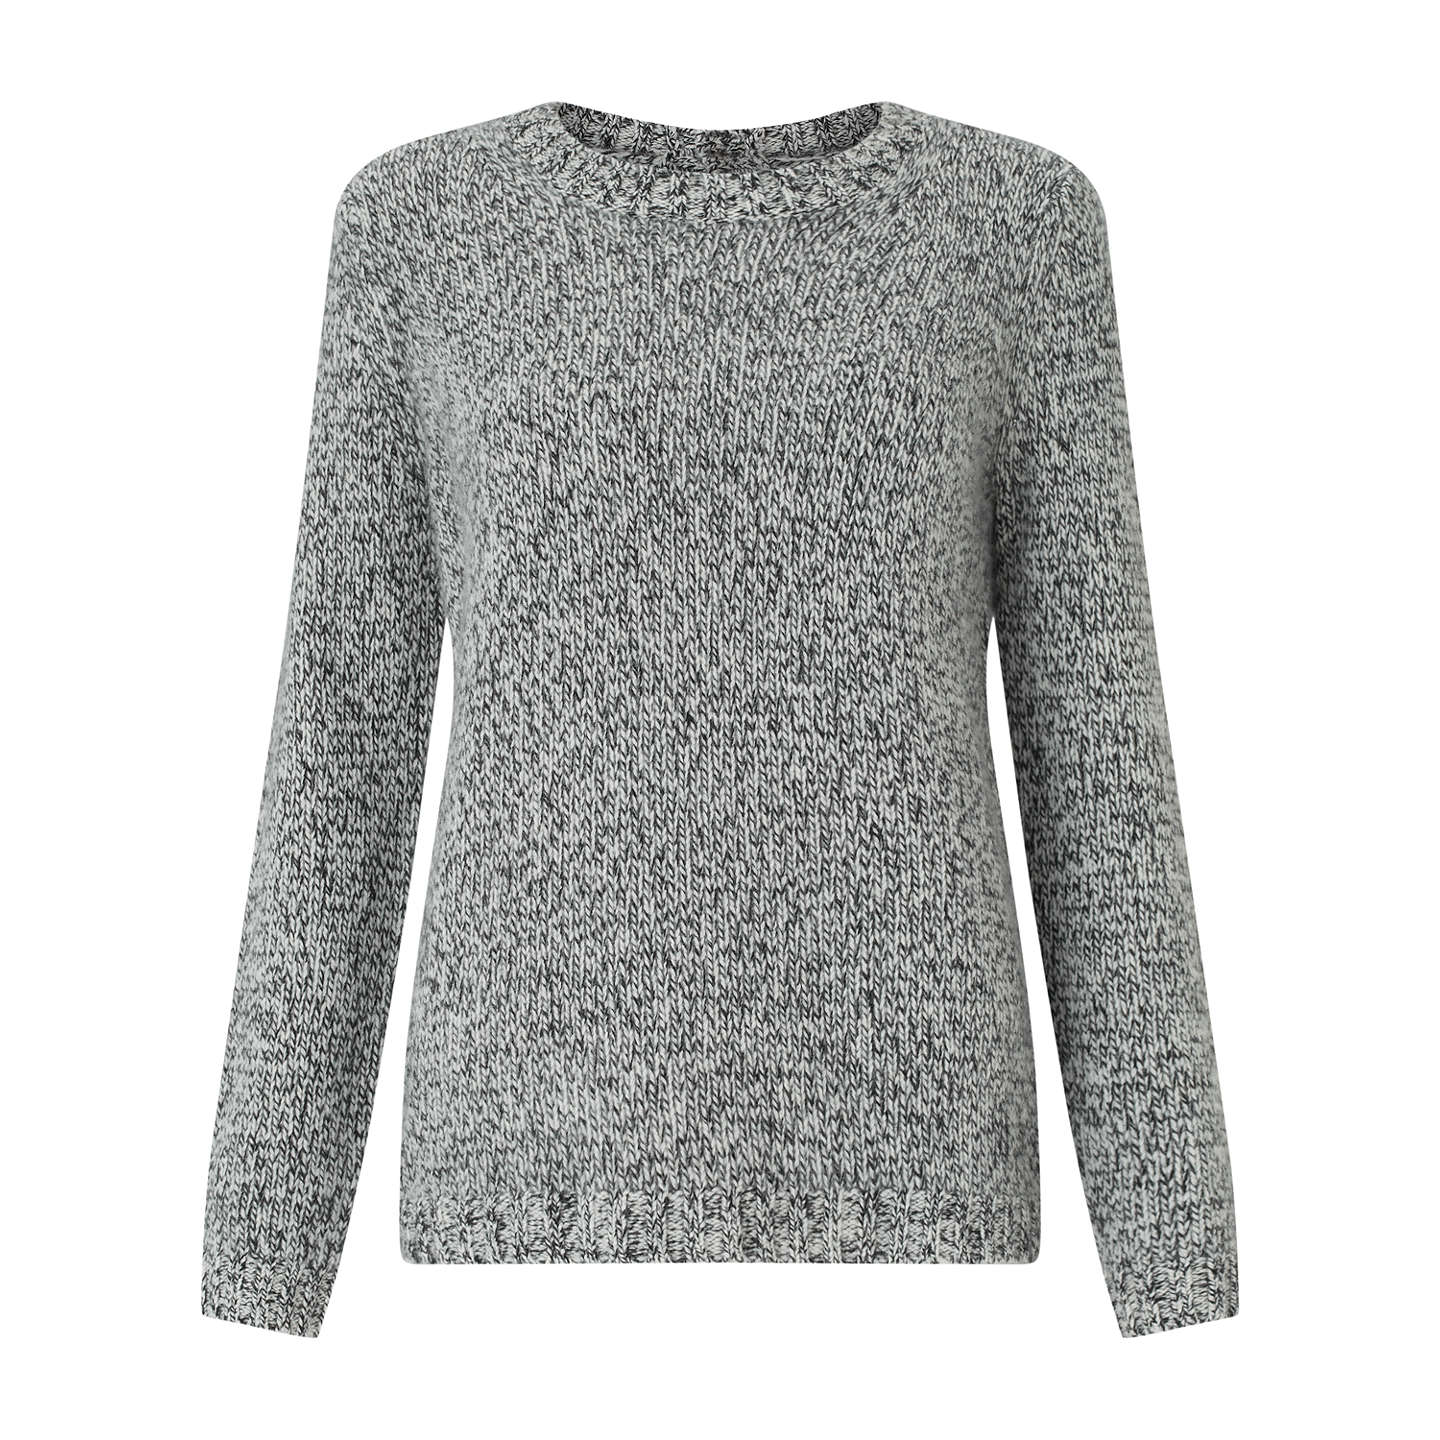 BuyCollection WEEKEND by John Lewis Donegal Cashmere Jumper, Black/White, 8 Online at johnlewis.com